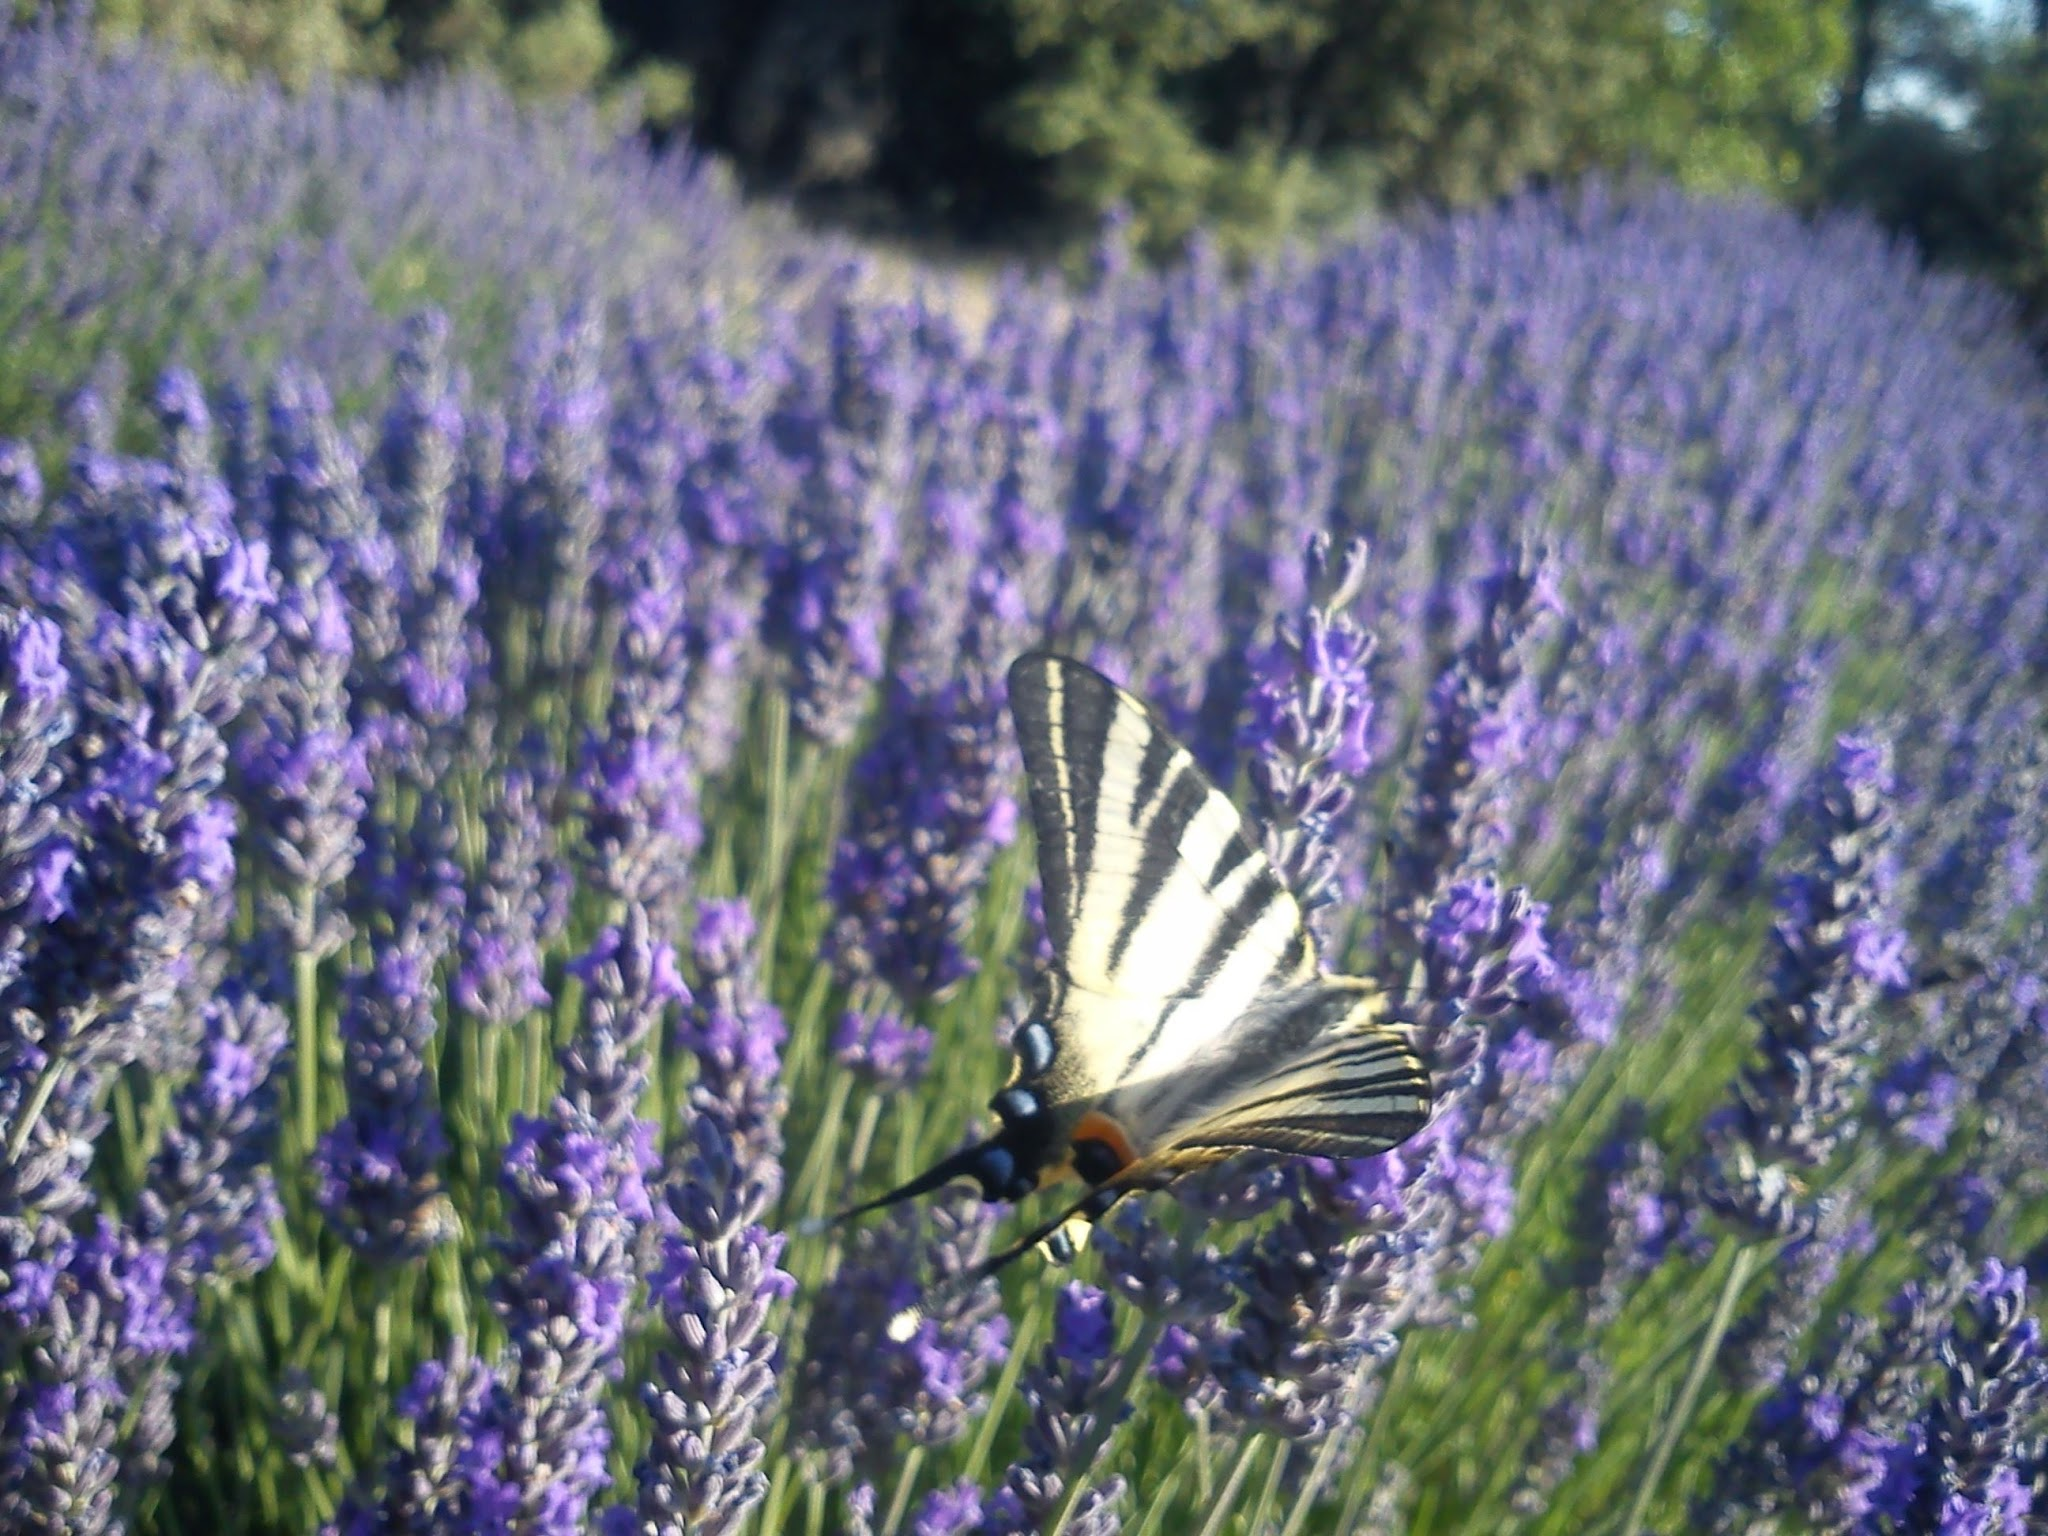 Swallowtail butterfly landed on lavender